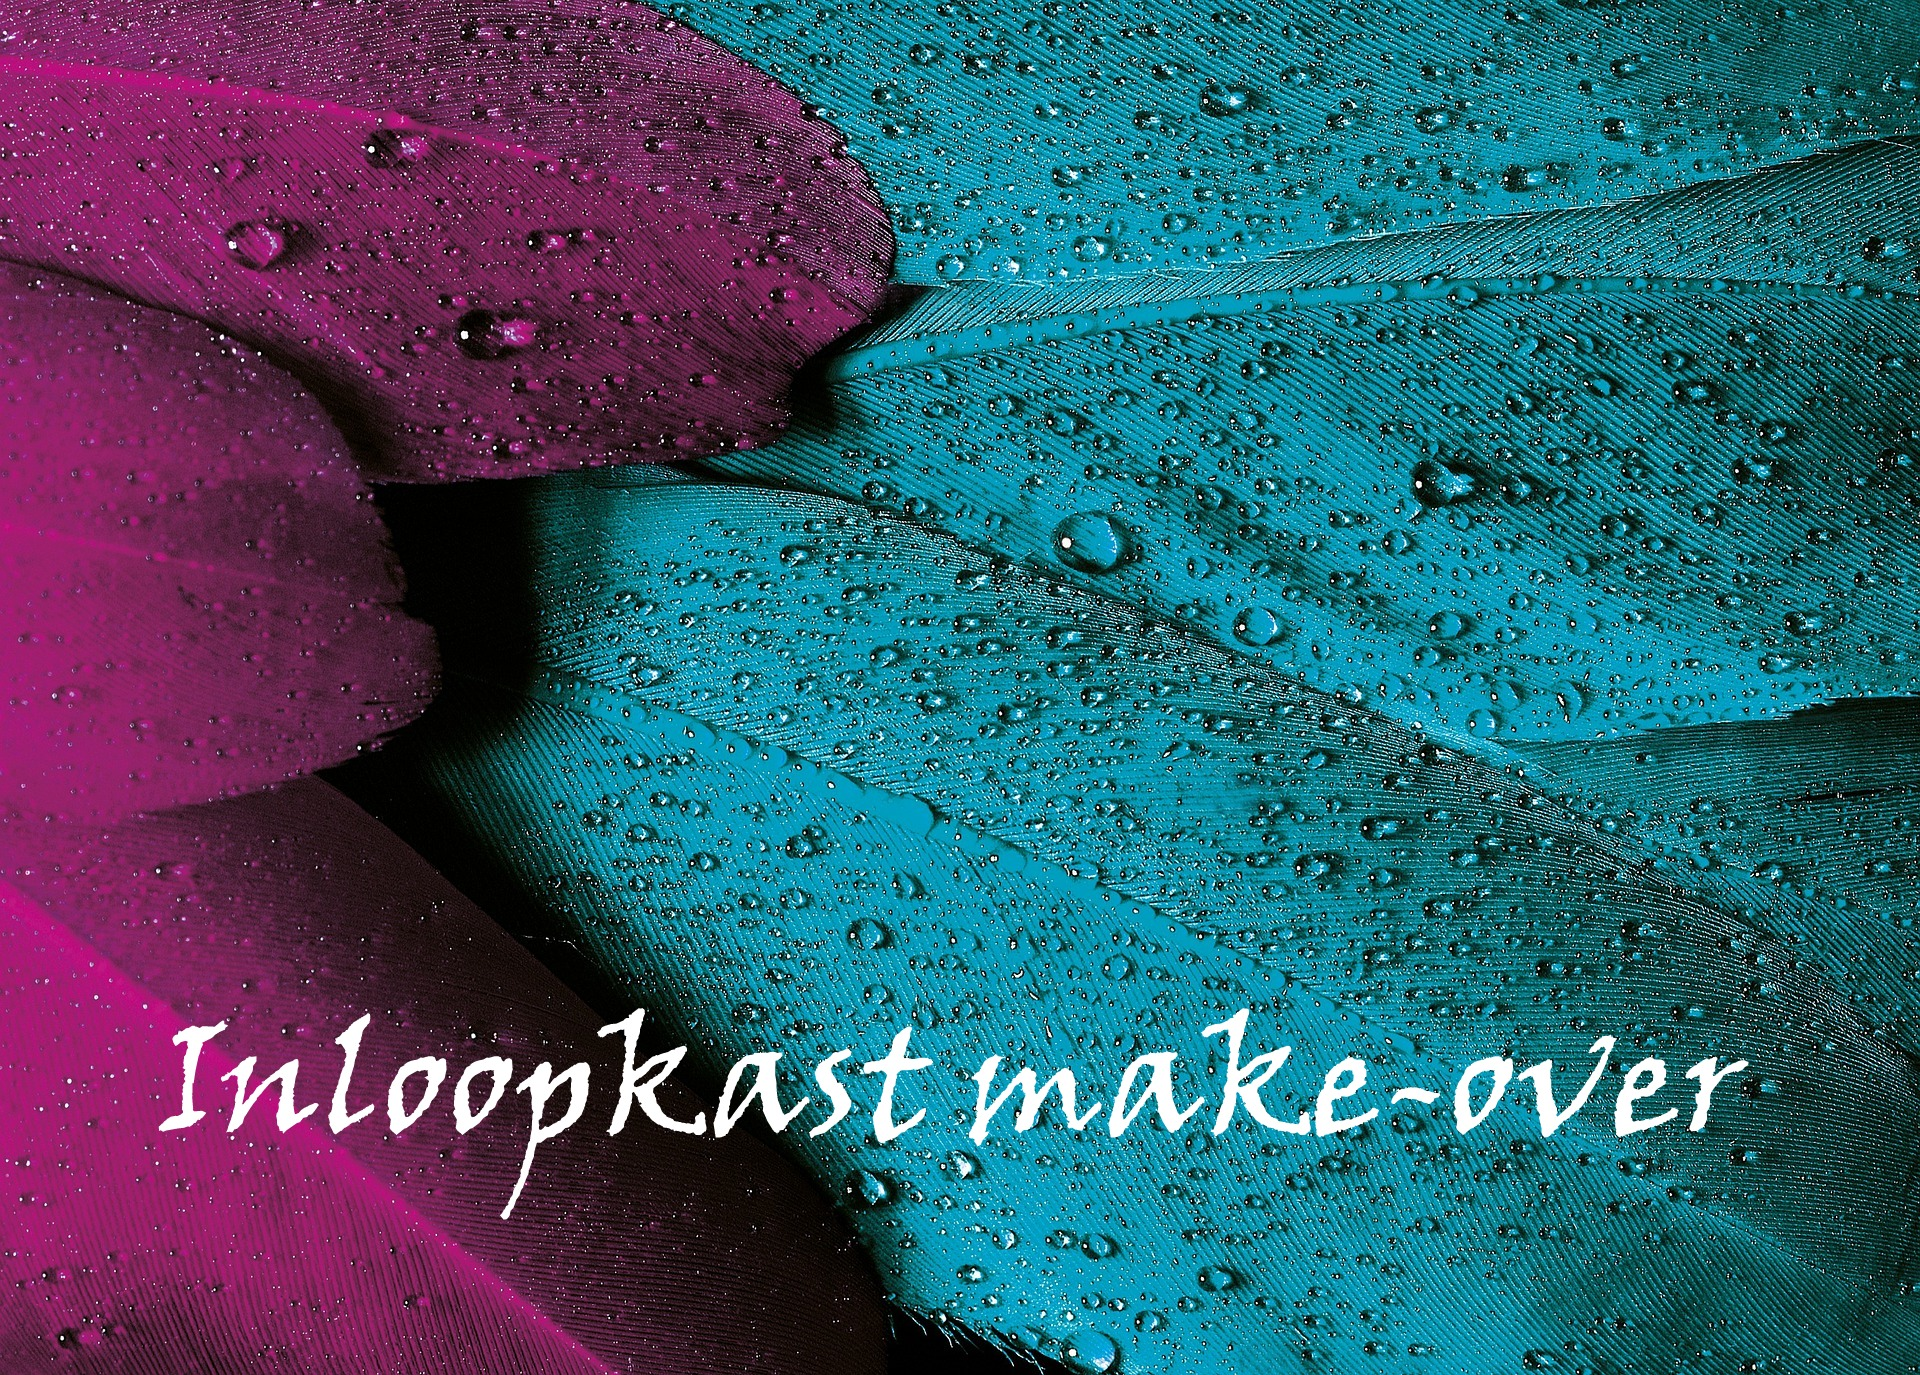 Inloopkast make-over